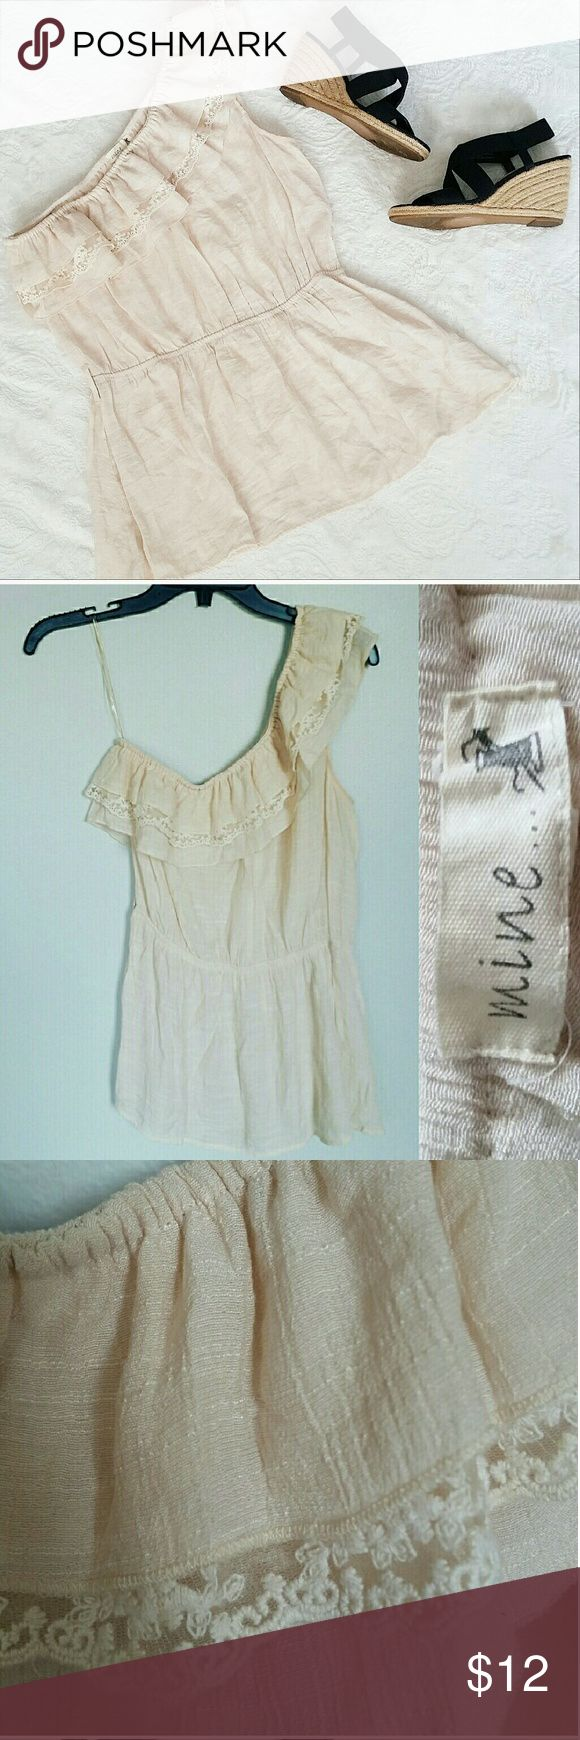 """MINE Cream Smocked Waist One Shoulder Smock MINE Cream Smocked Waist One Shoulder smock EUC no flaws besides original tie missing ( shown in photos). No need to wear a tie, or you can style with your own belt/tie to match any outfit! This cute top is a light, flowy material  ( material info in photos) and goes wonderfully with any pair of printed pants or jeans! Neck to hem 20"""", armpit to armpit 17"""", with at waist 13"""" (elastic in waist so it stretches), width at hem 22"""". MINE Tops Blouses"""